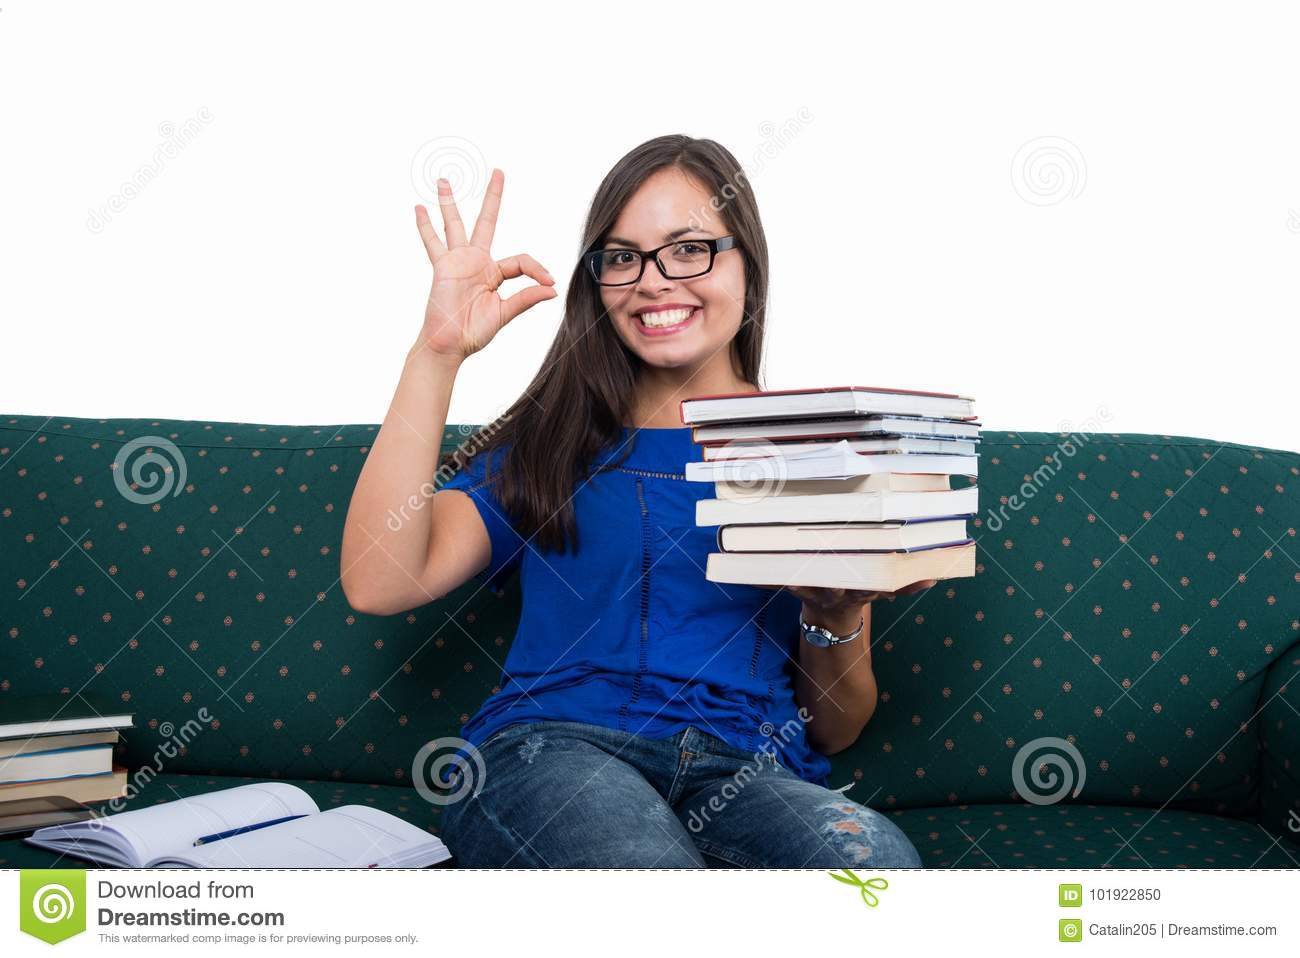 Student girl sitting on couch showing ok holding books